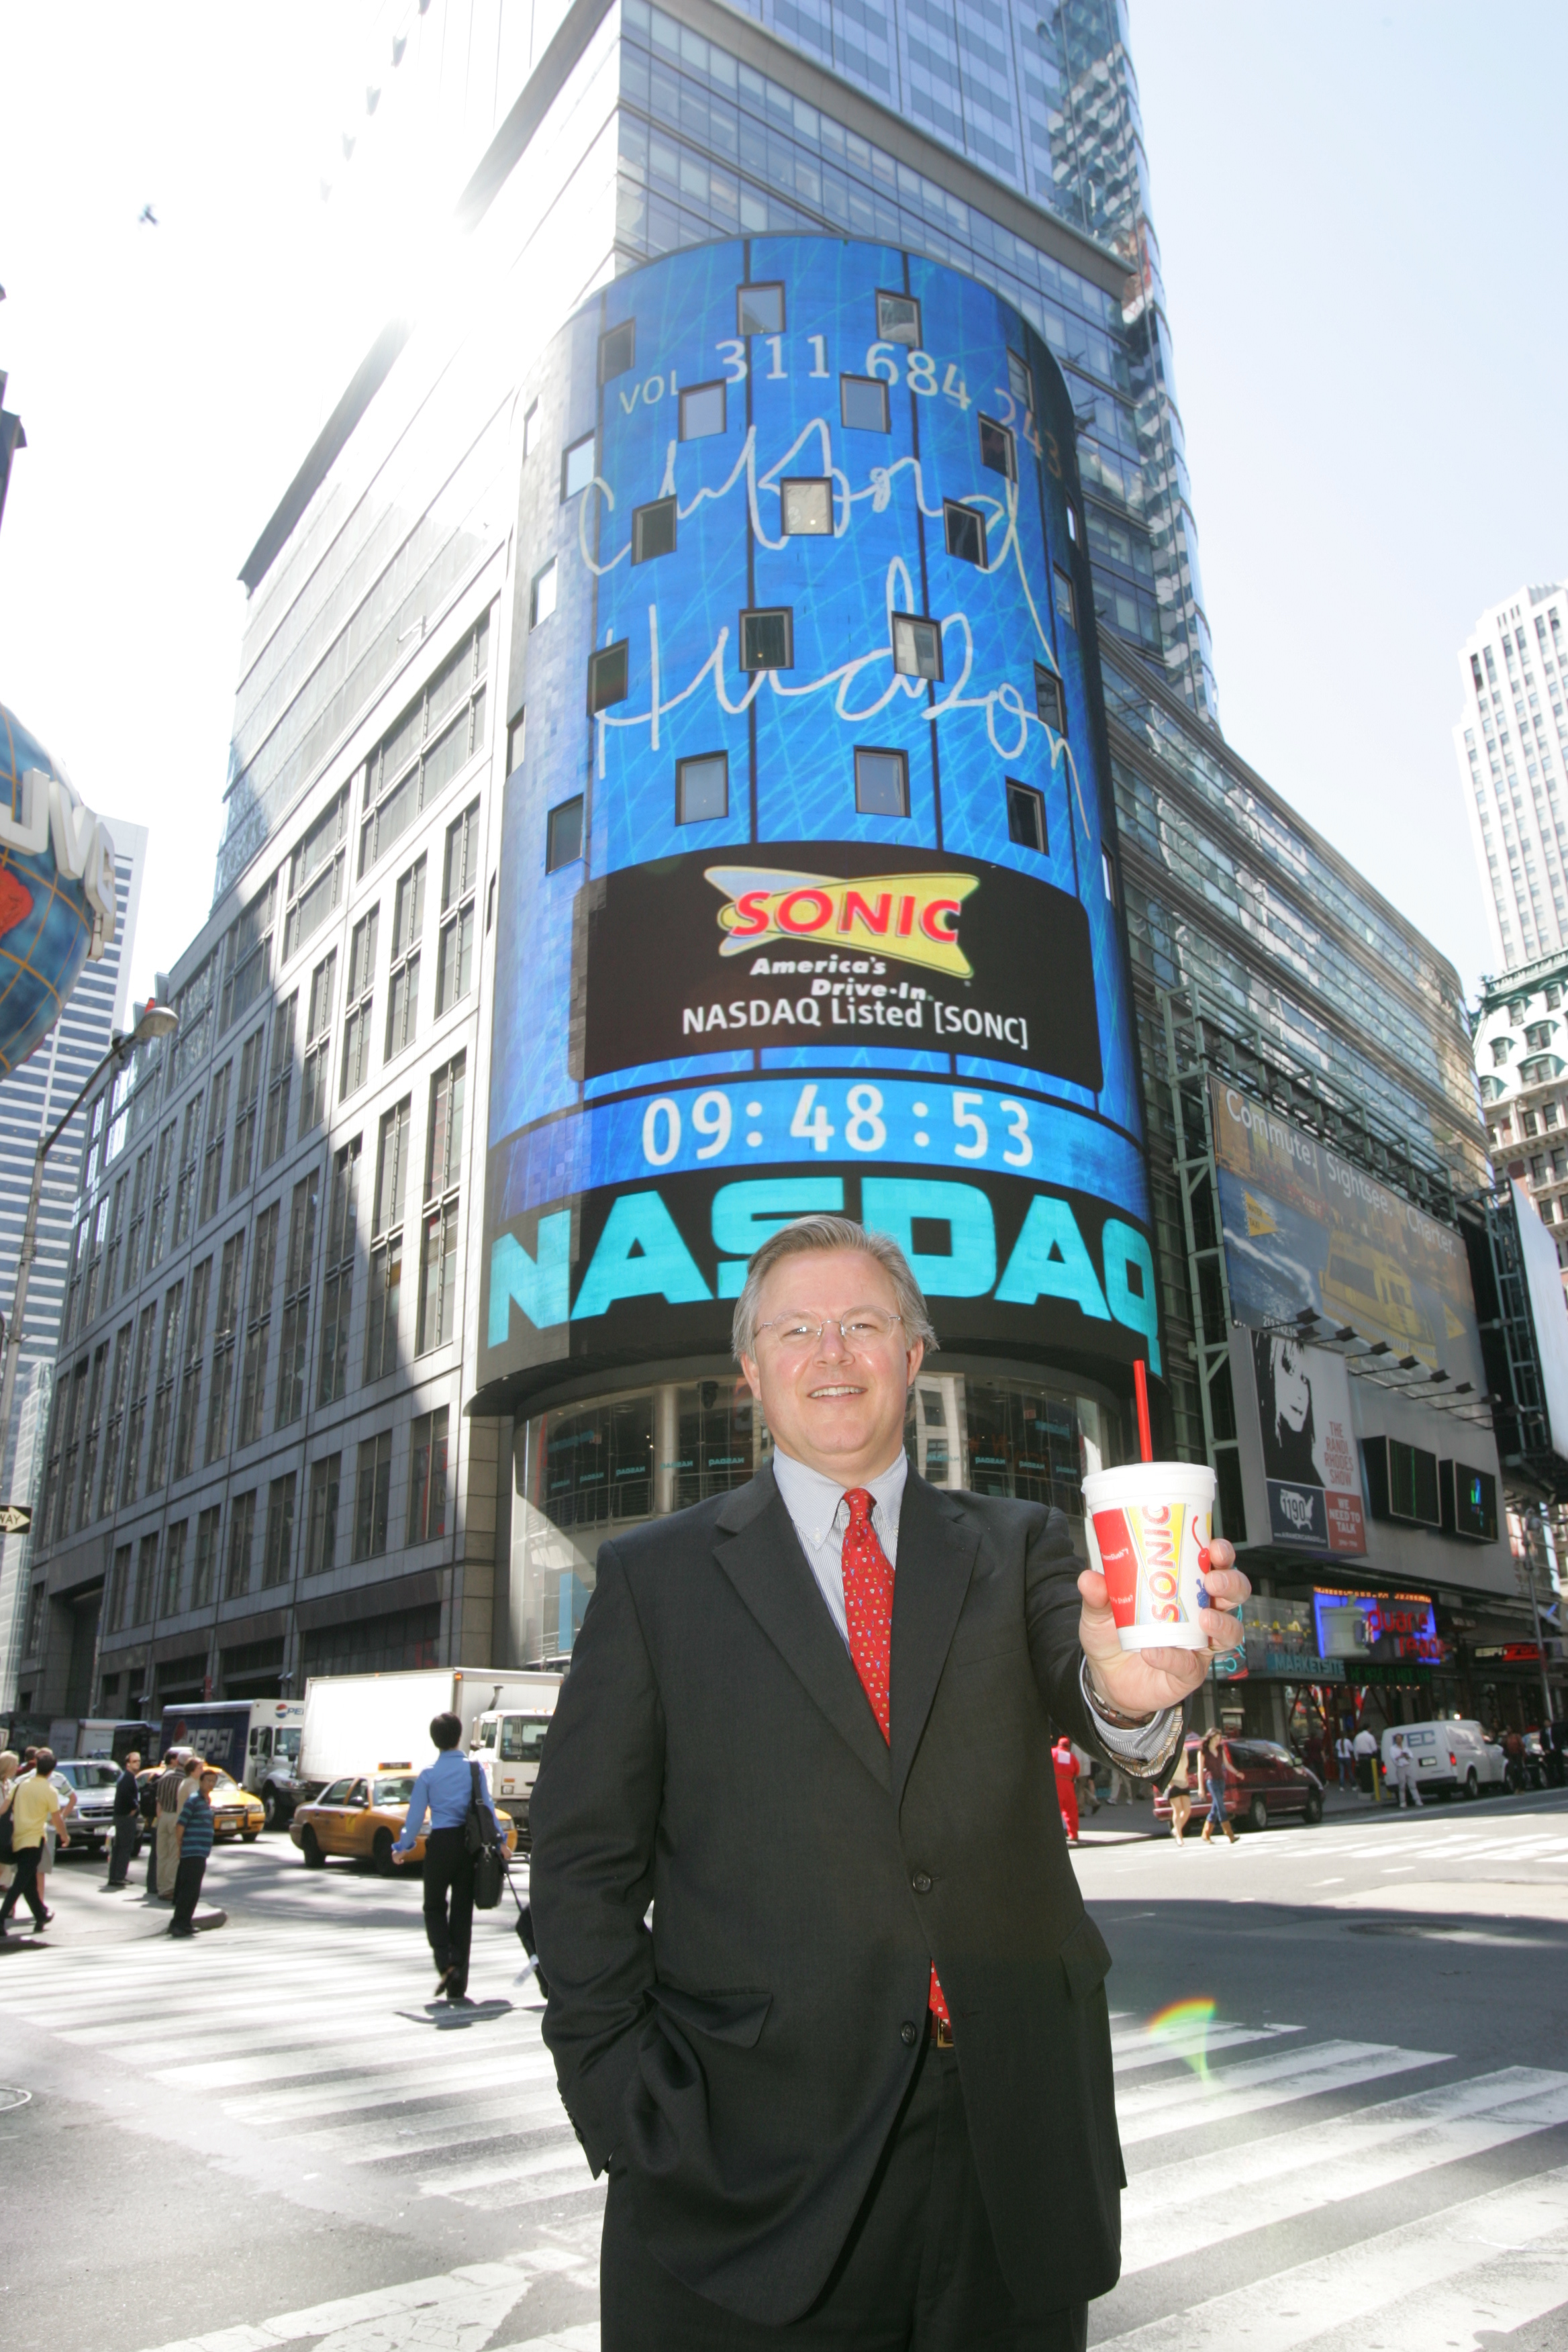 Clifford Hudson in Times Square with Sonic on NASDAQ building